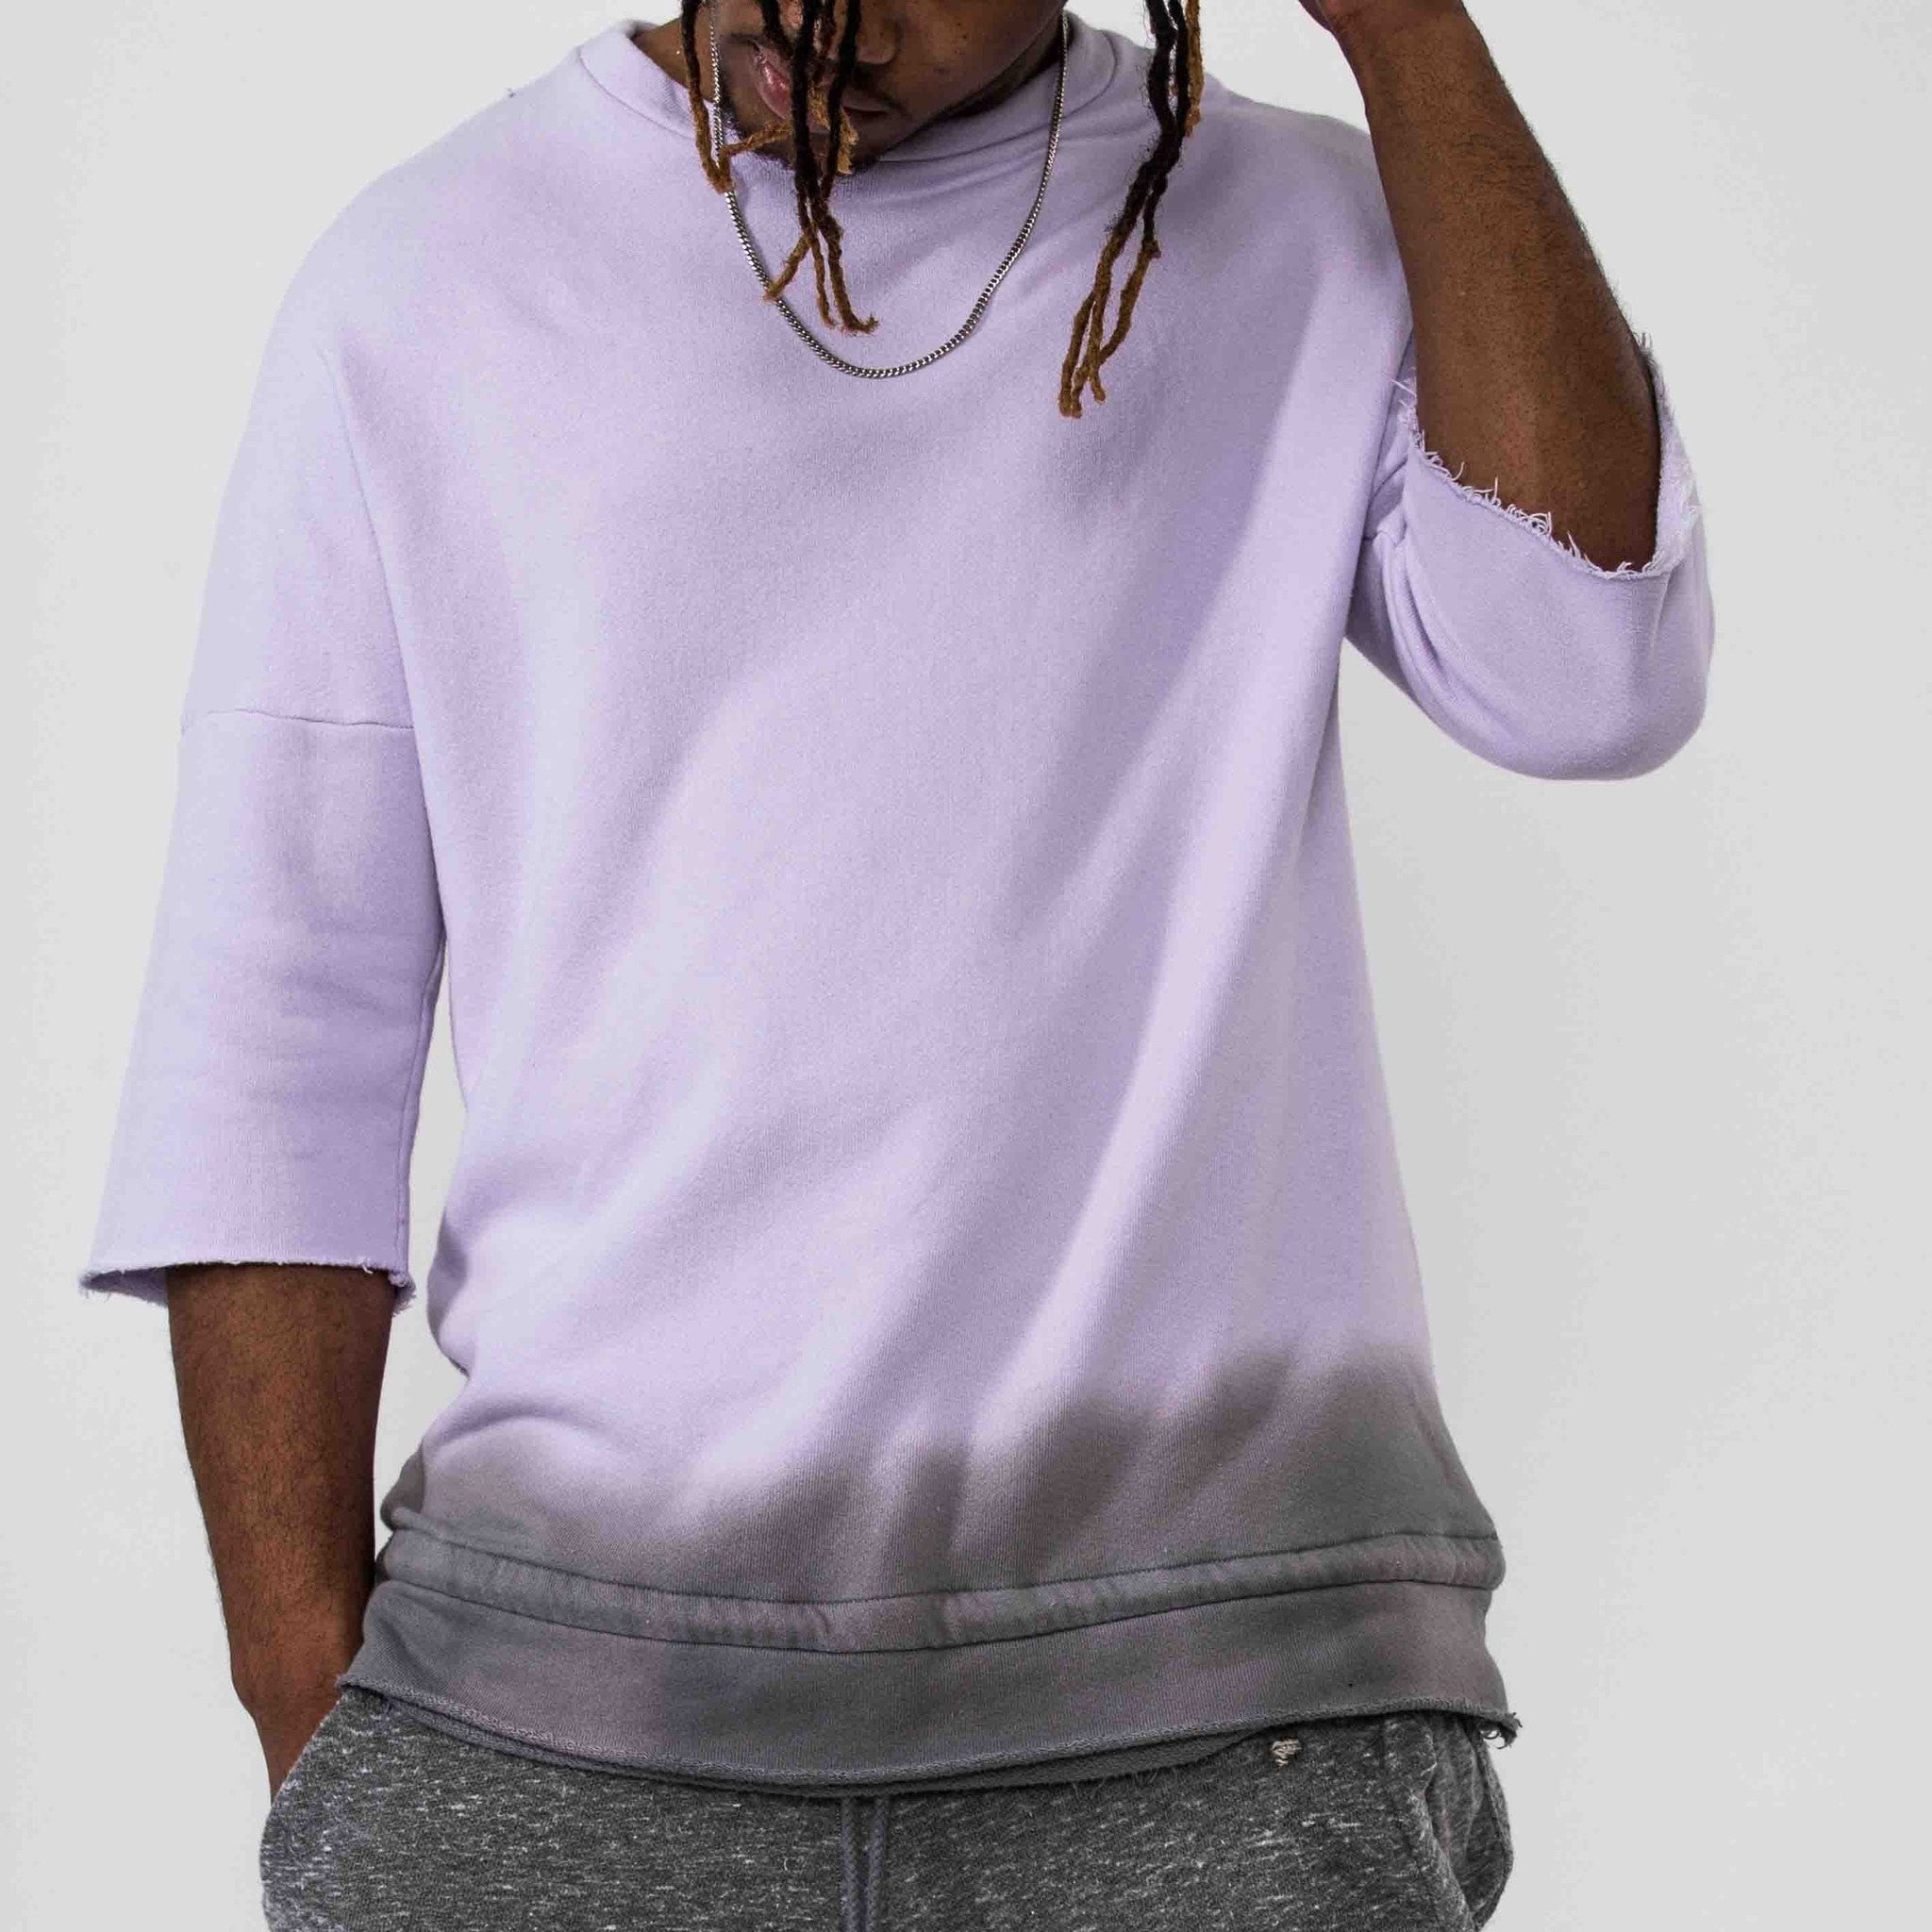 Dip Dyed Crewneck - Pink/Grey